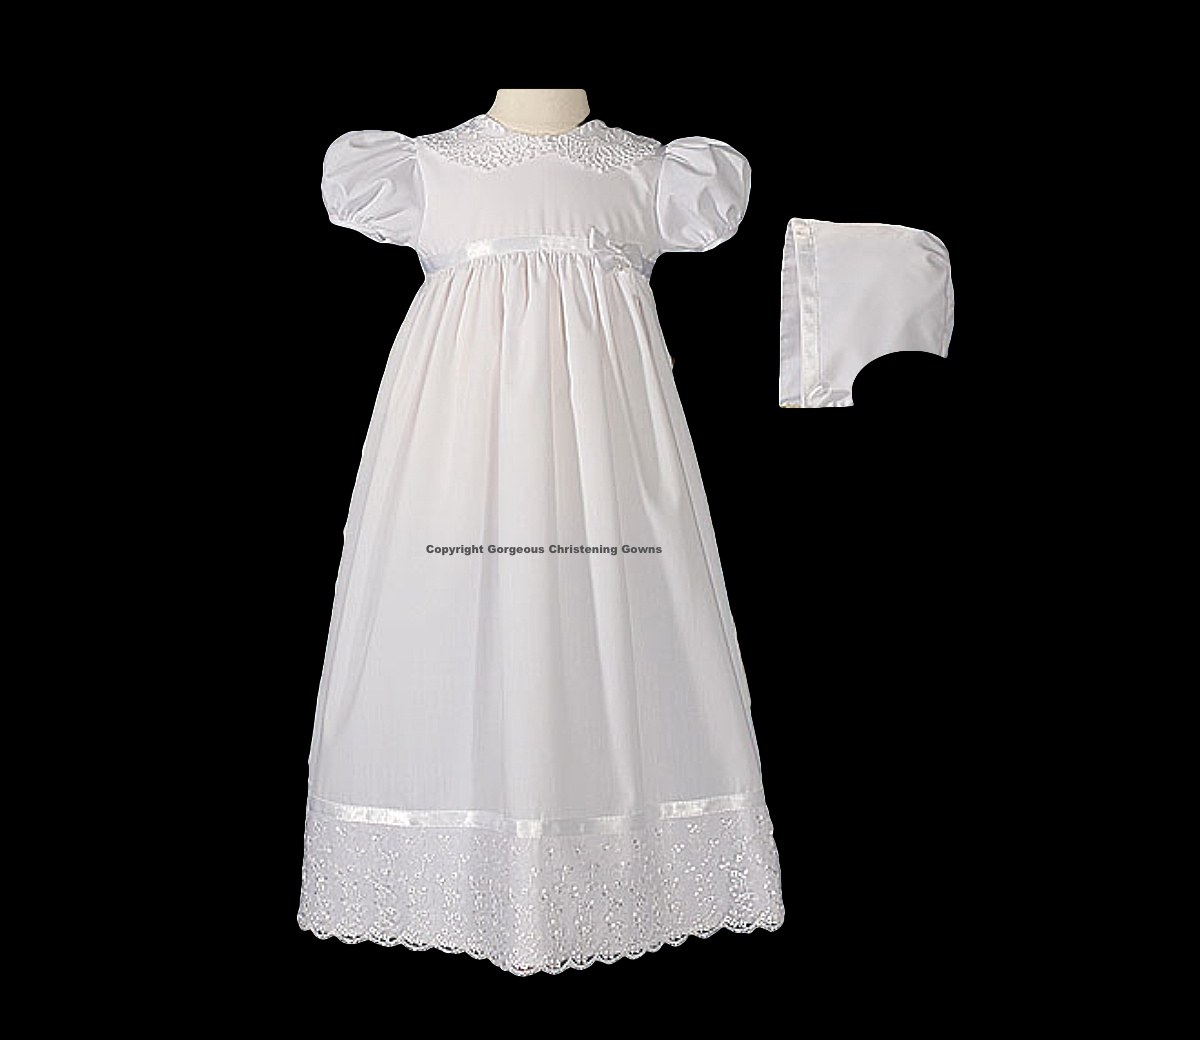 Girls Christening Gowns | Boys Christening Outfits | Communion ...